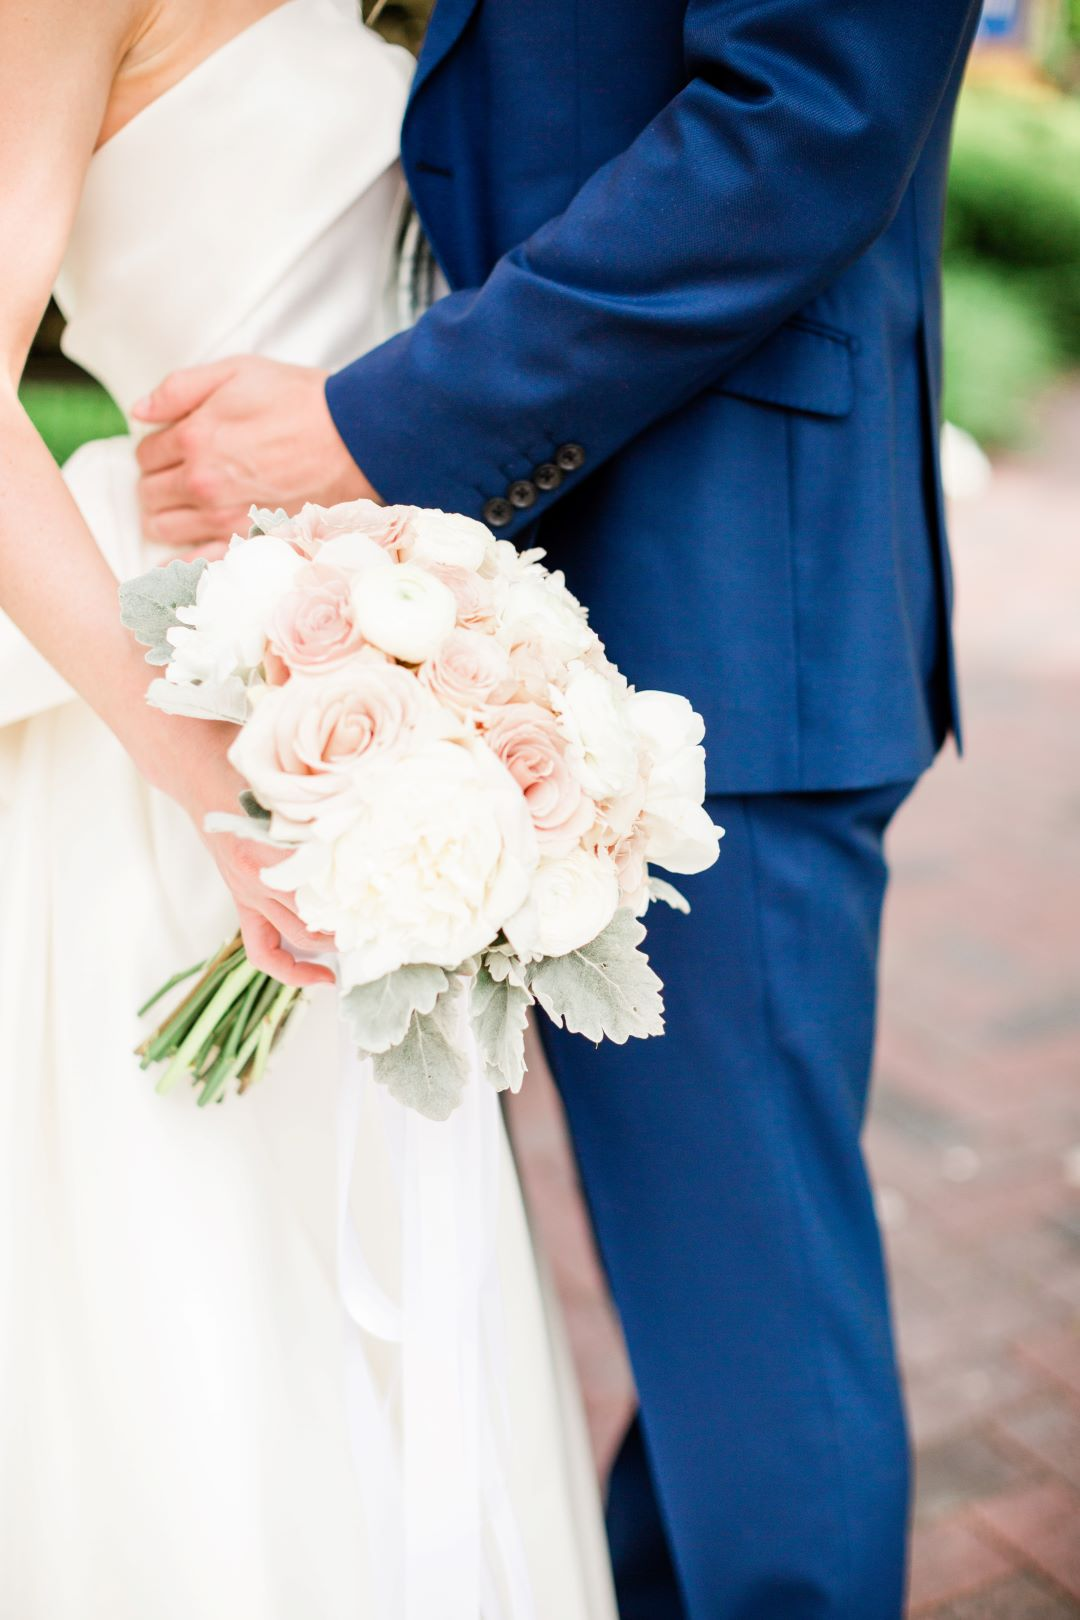 CJ's Off The Square   Close up of groom holding bride's waist and highlighting bouquet of blush roses